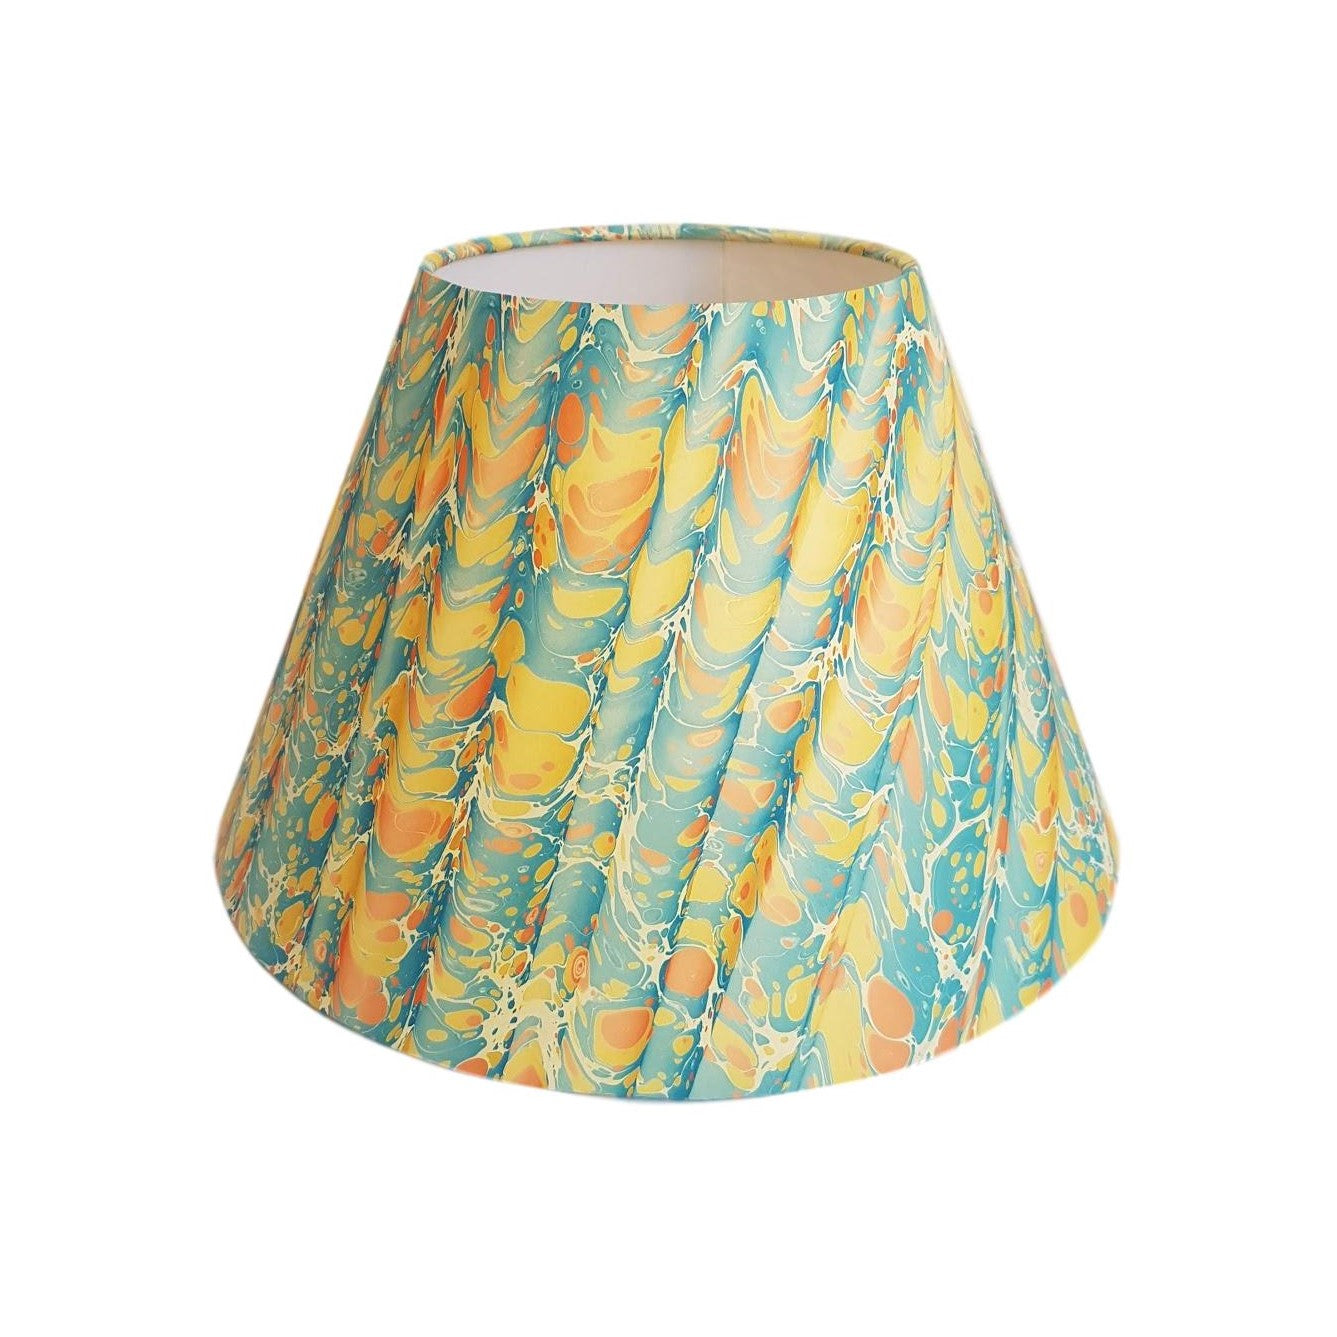 Munro and Kerr yellow blue peach folds marbled paper for a handmade tapered empire lampshade